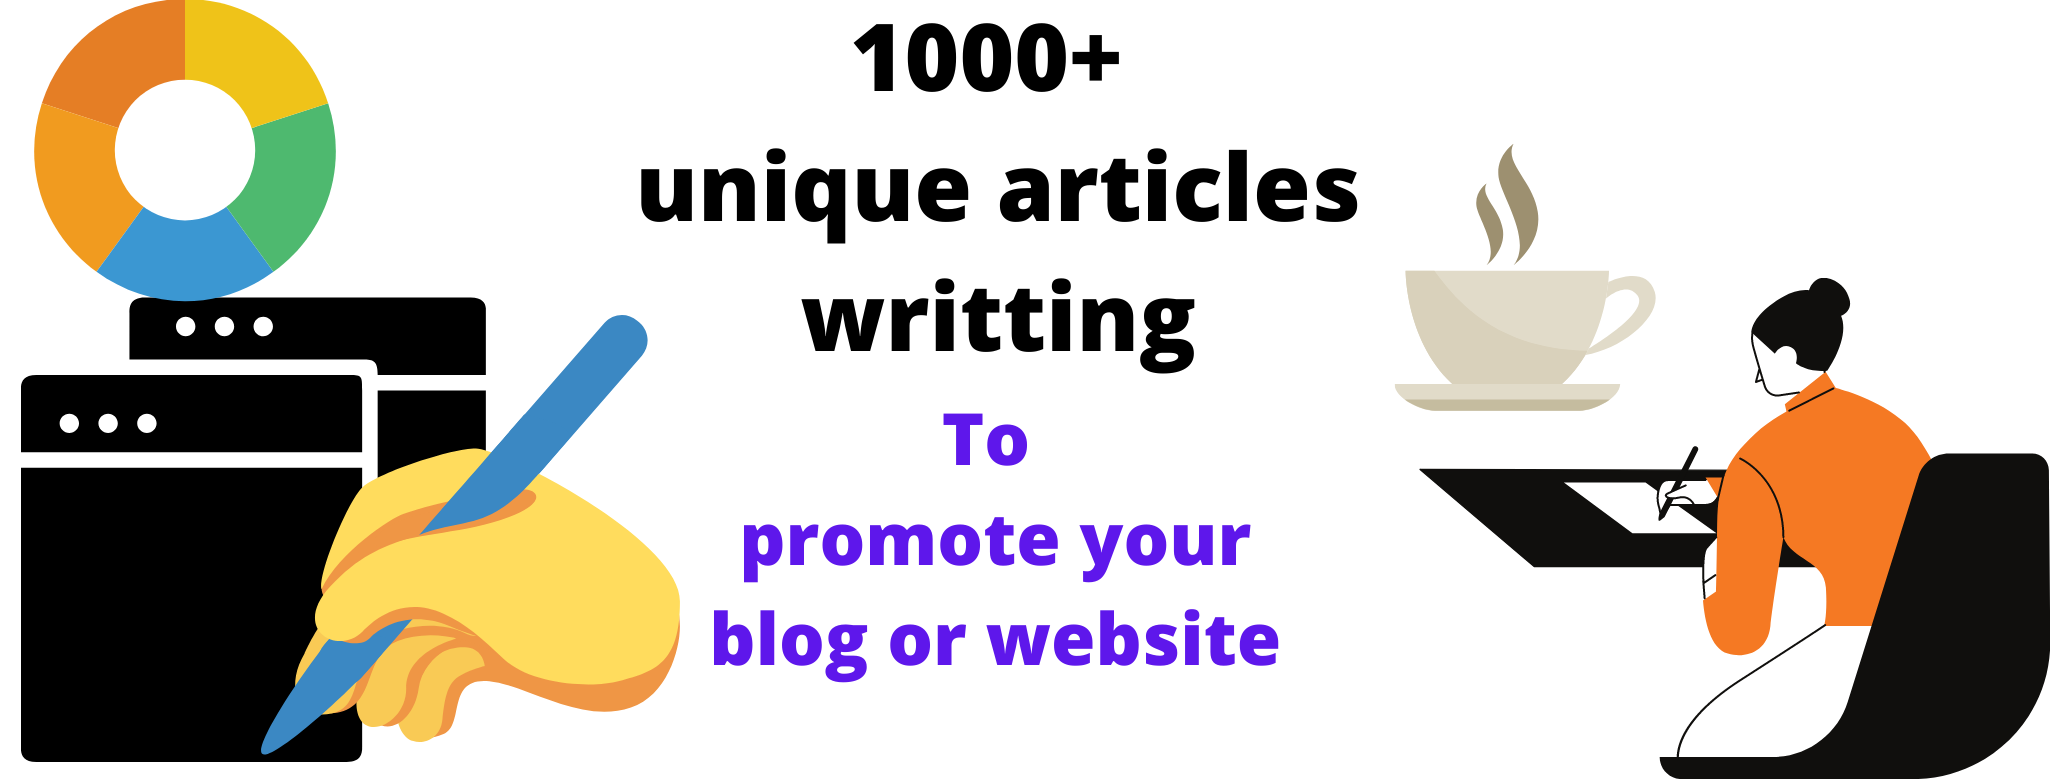 1000+ words SEO friendly article for your website/blog.